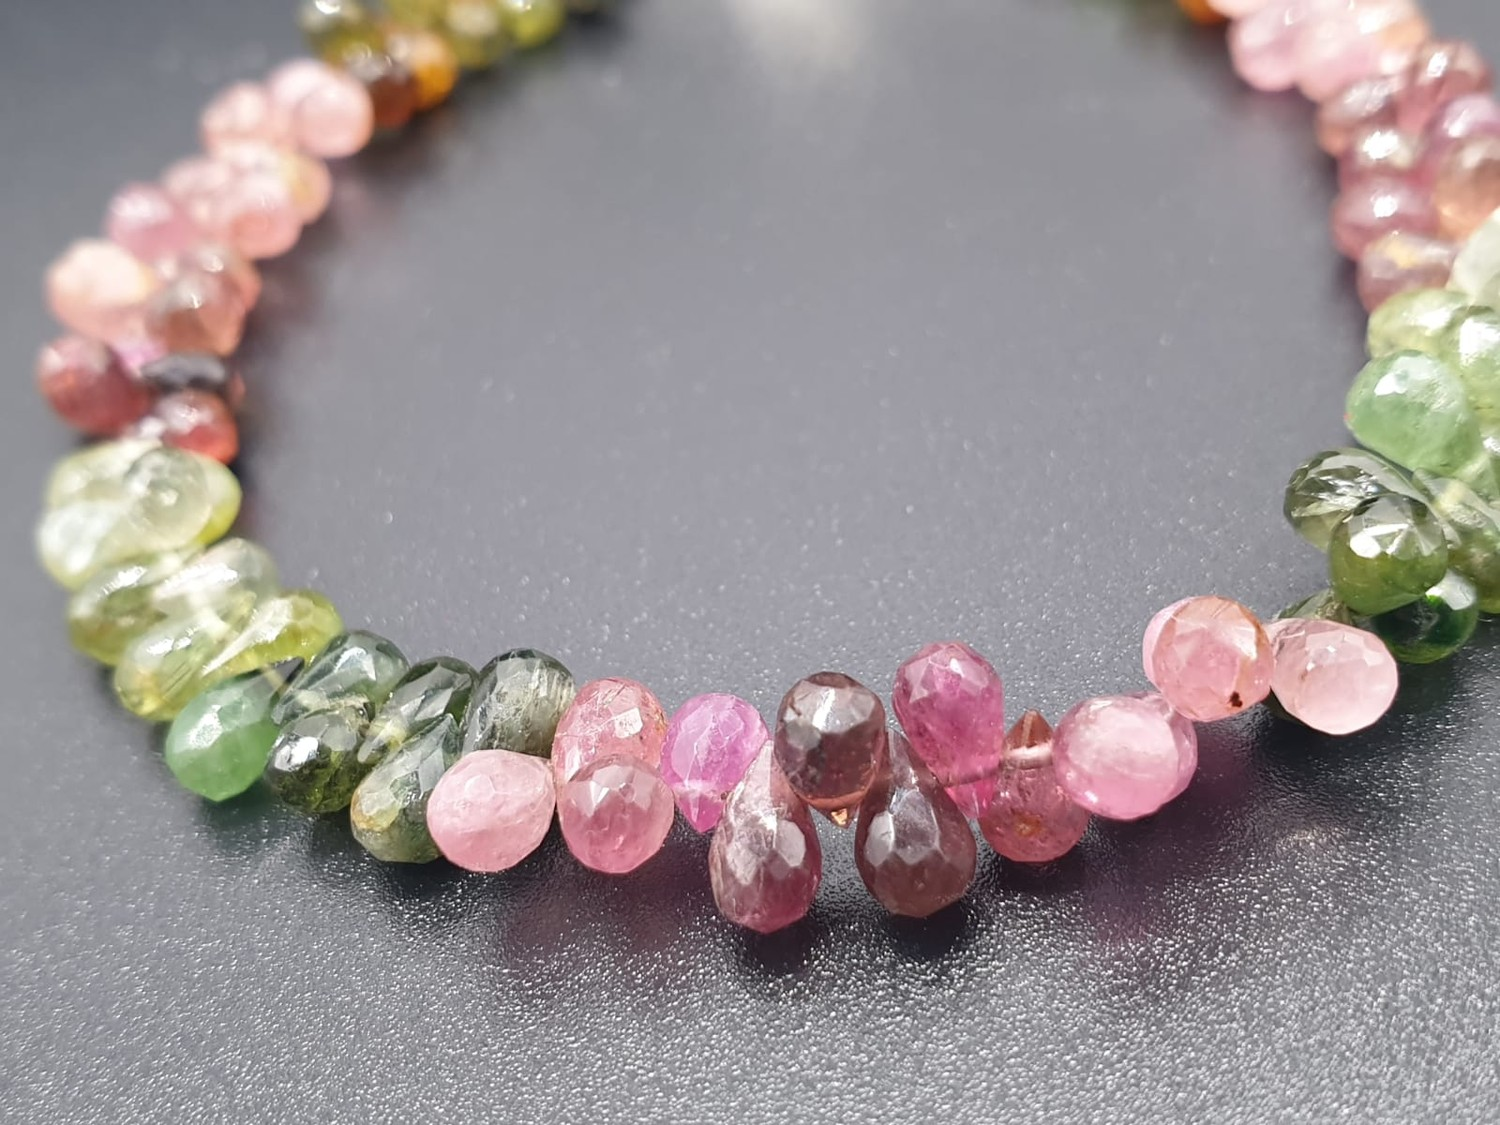 Single Row 3mm Tourmaline Necklace With Matching Tourmaline Drops Bracelet and 925 silver Clasp - Image 3 of 8